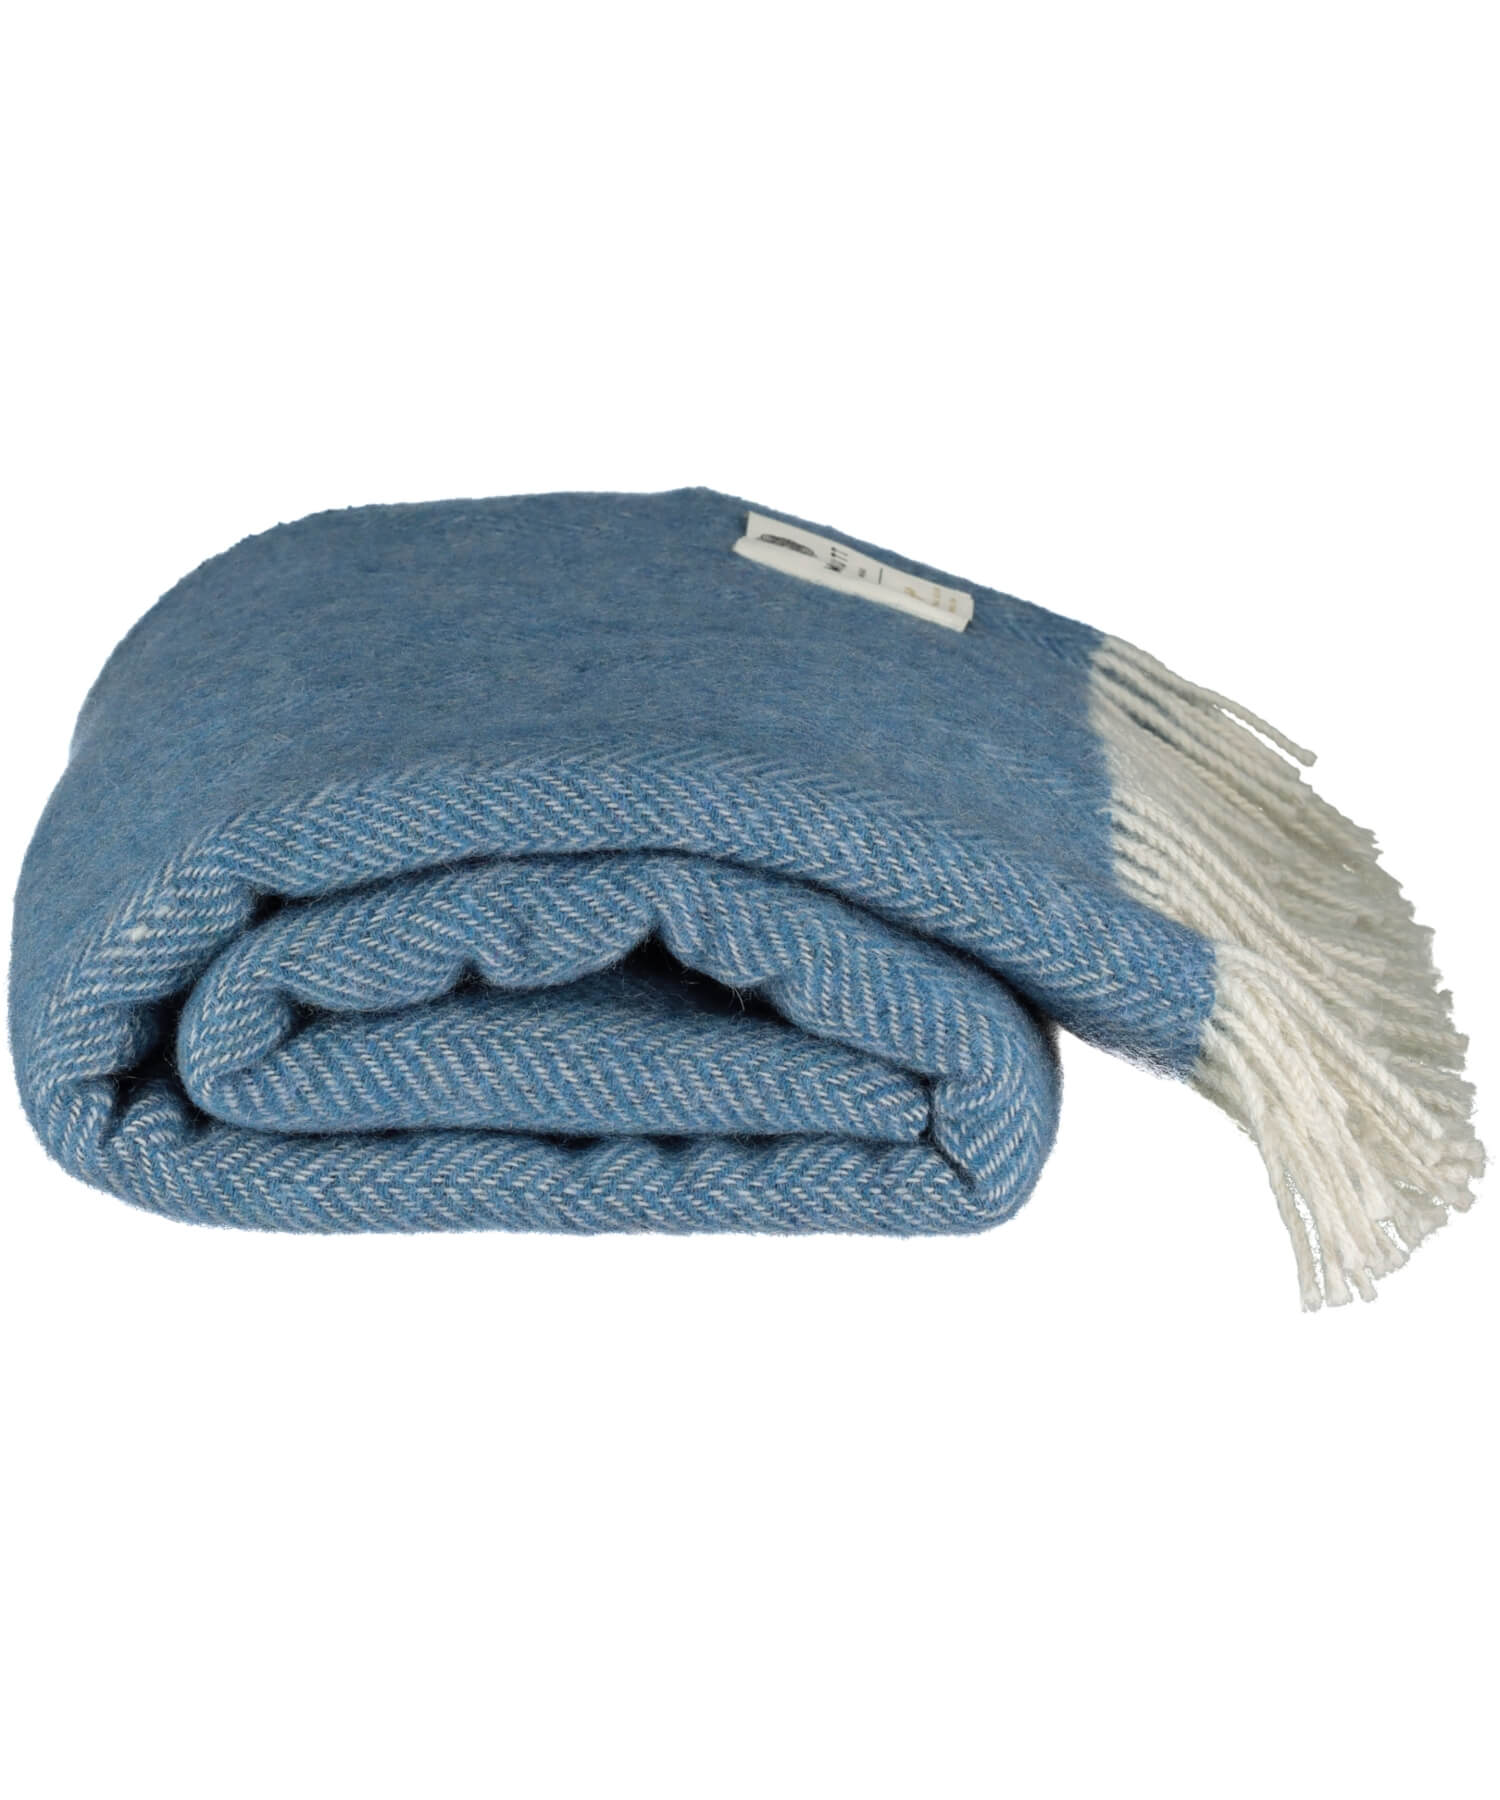 Heritage - Blue Sky - [McNutts] - Throws & Cushions - Irish Gifts